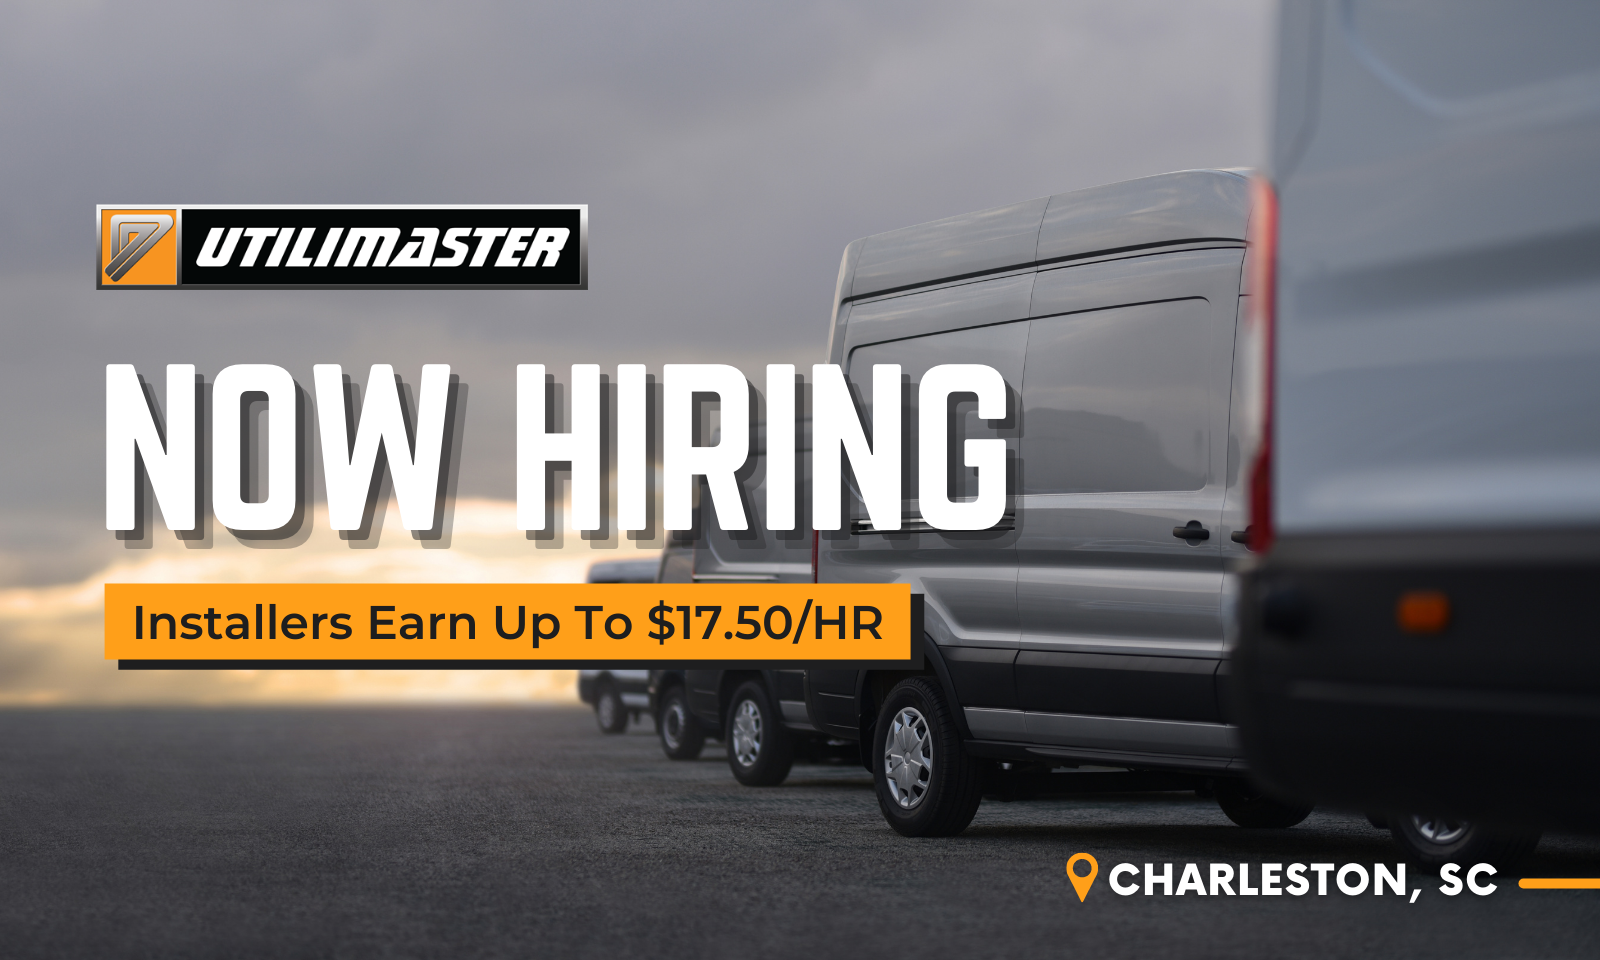 Utilimaster is Now Hiring Direct-hire Installers in Charleston, SC